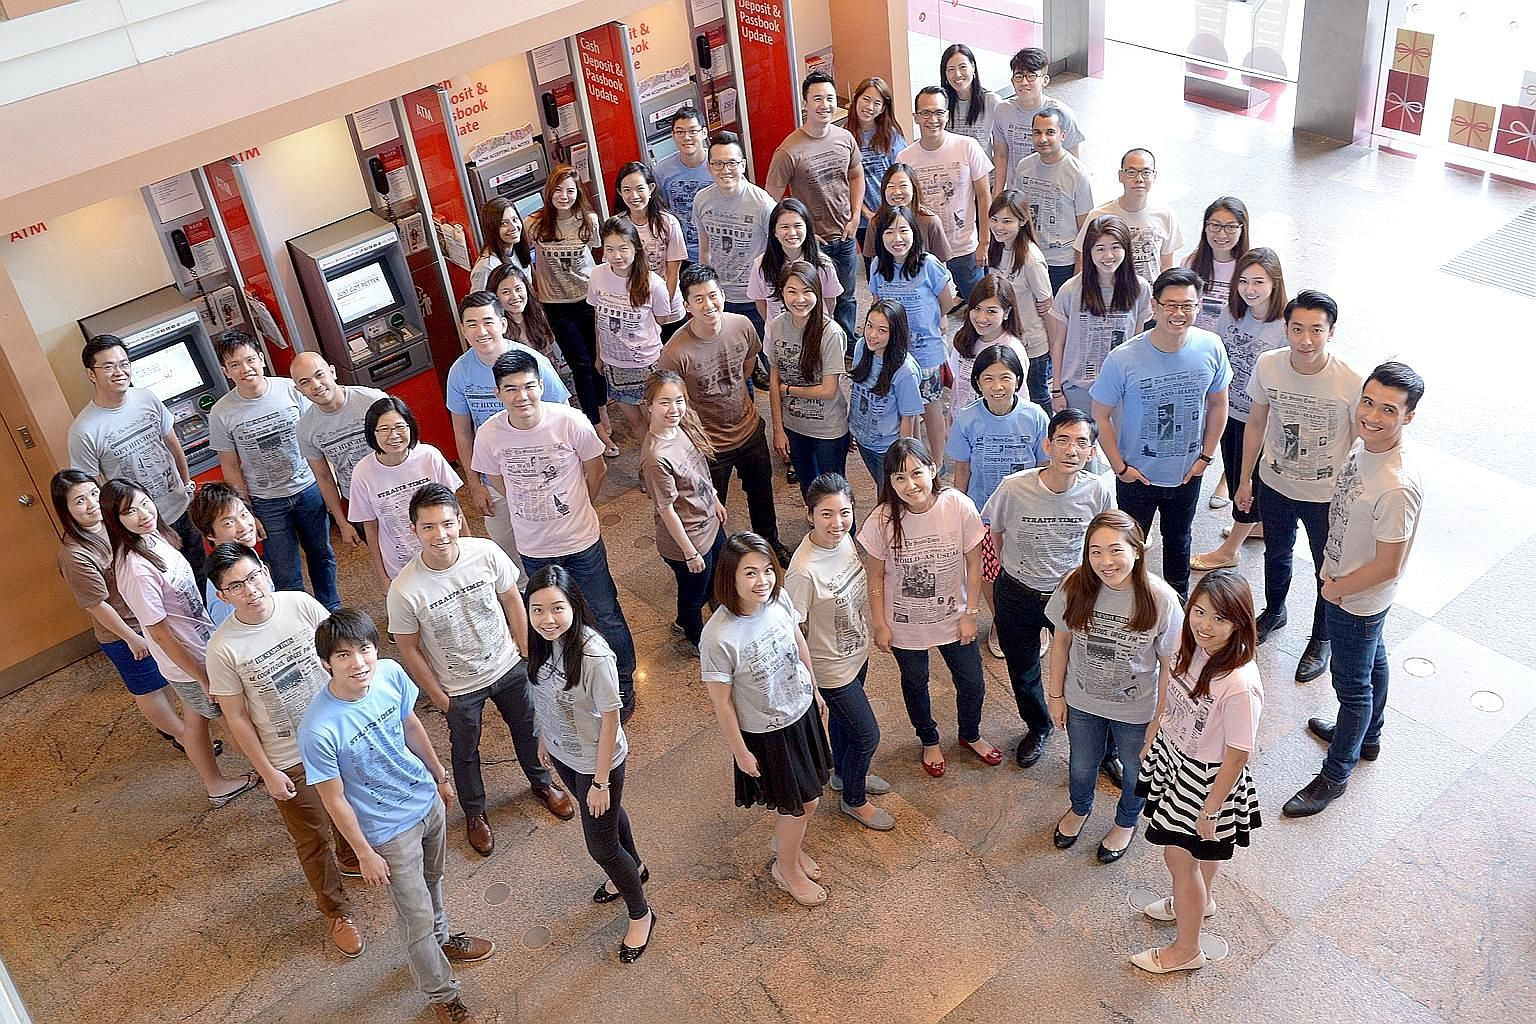 Fifty OCBC Bank employees (left) donned T-shirts produced by The Straits Times on Friday to commemorate the newspaper's 170th anniversary. The bank bought 200 T-shirts, which feature historical front pages of The Straits Times, for its staff voluntee